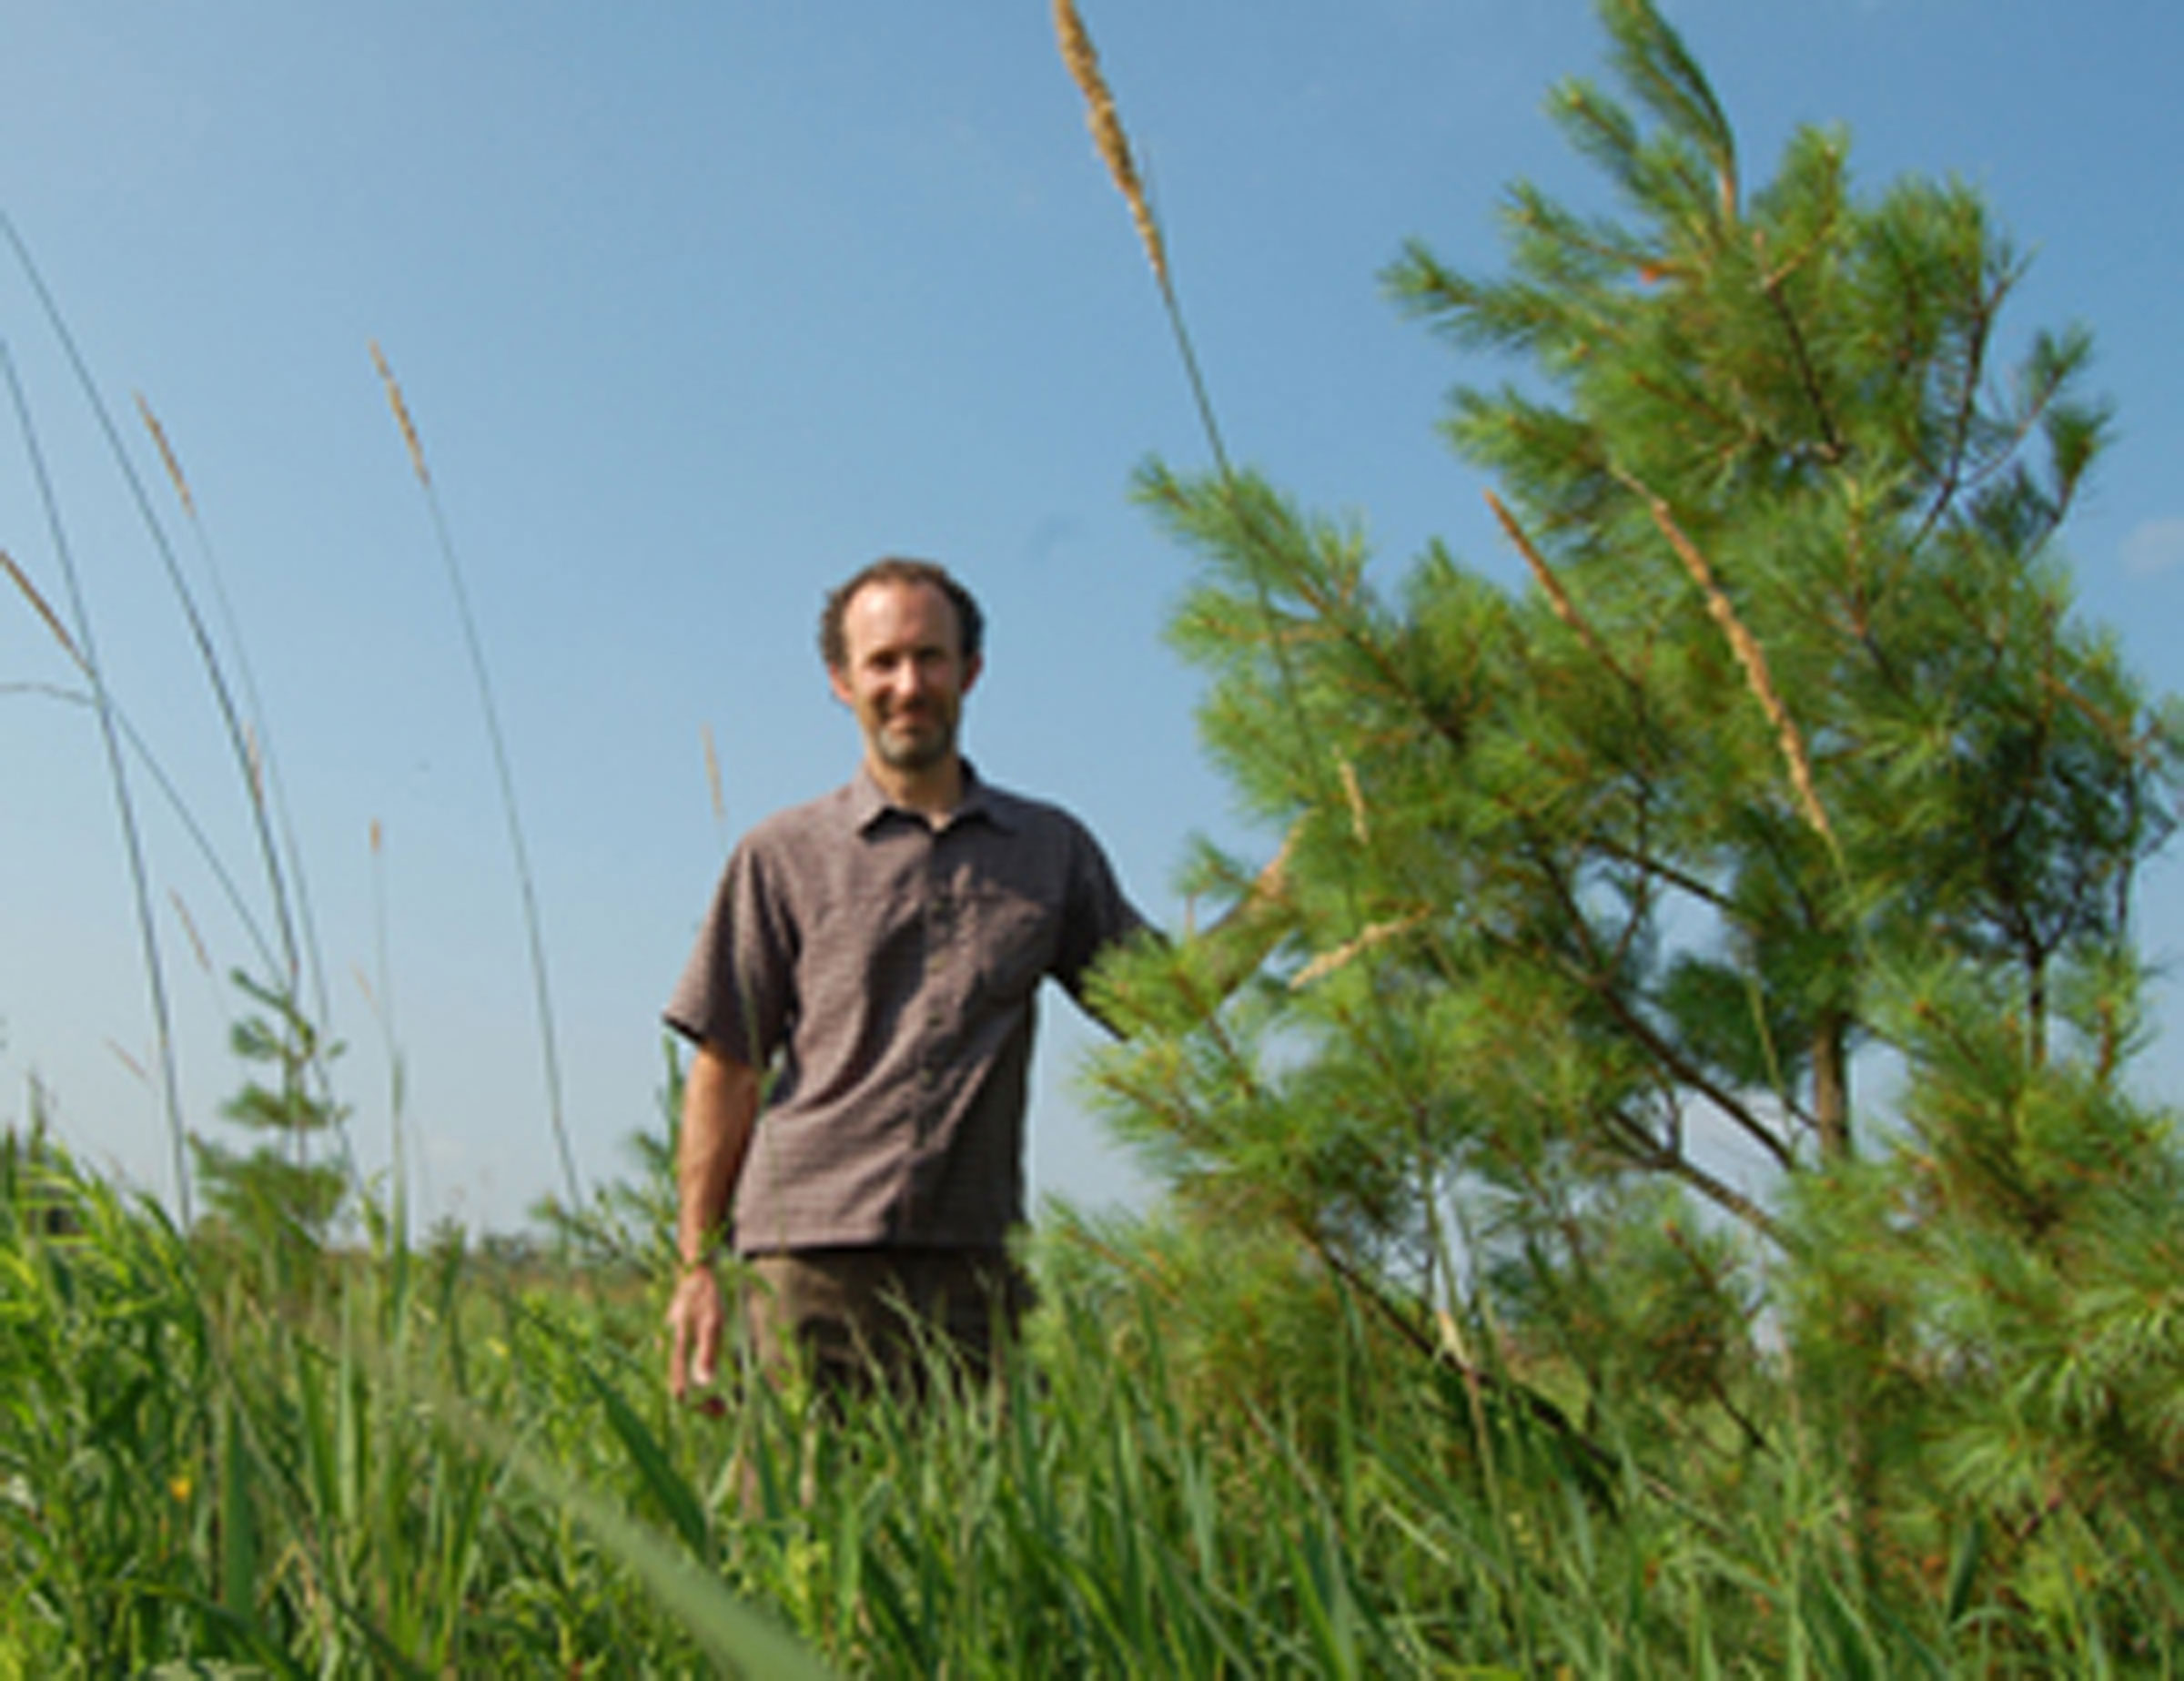 Jim Phillips stands by a tree in a field on his property. GRCA photo